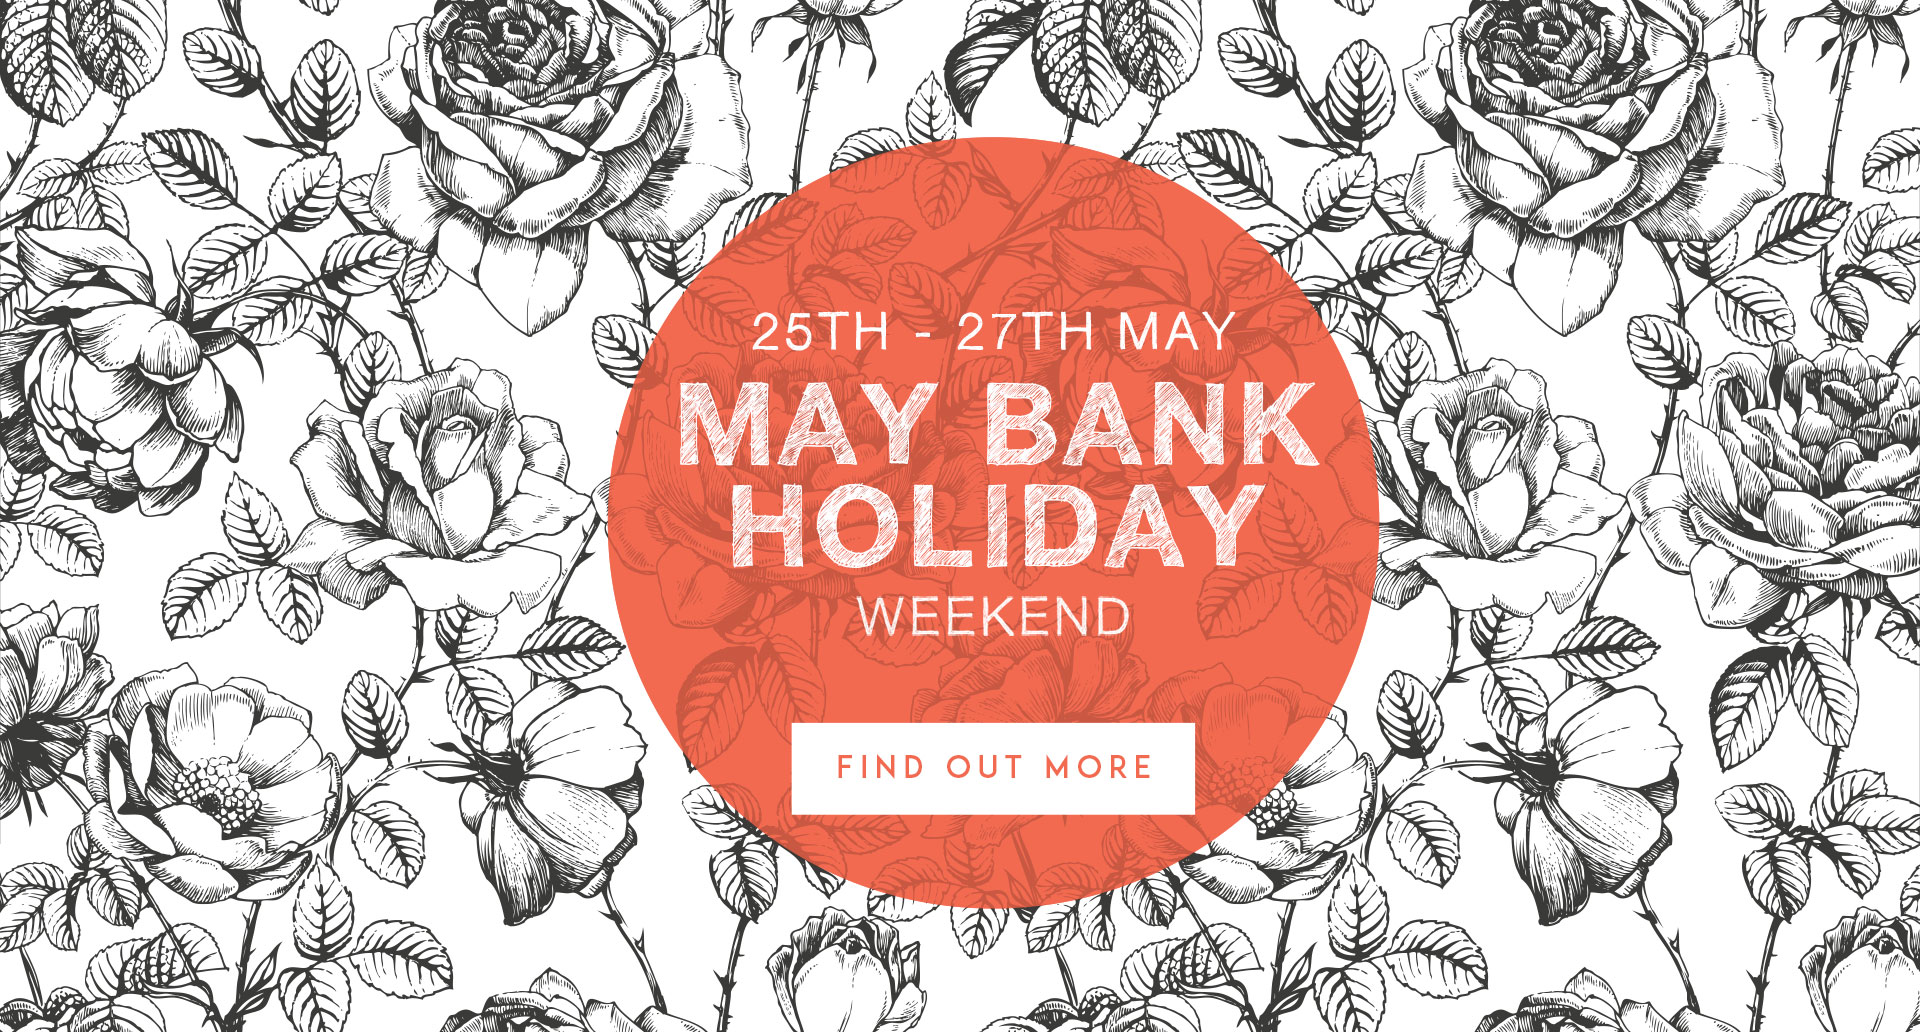 May Bank Holiday at The Flyer